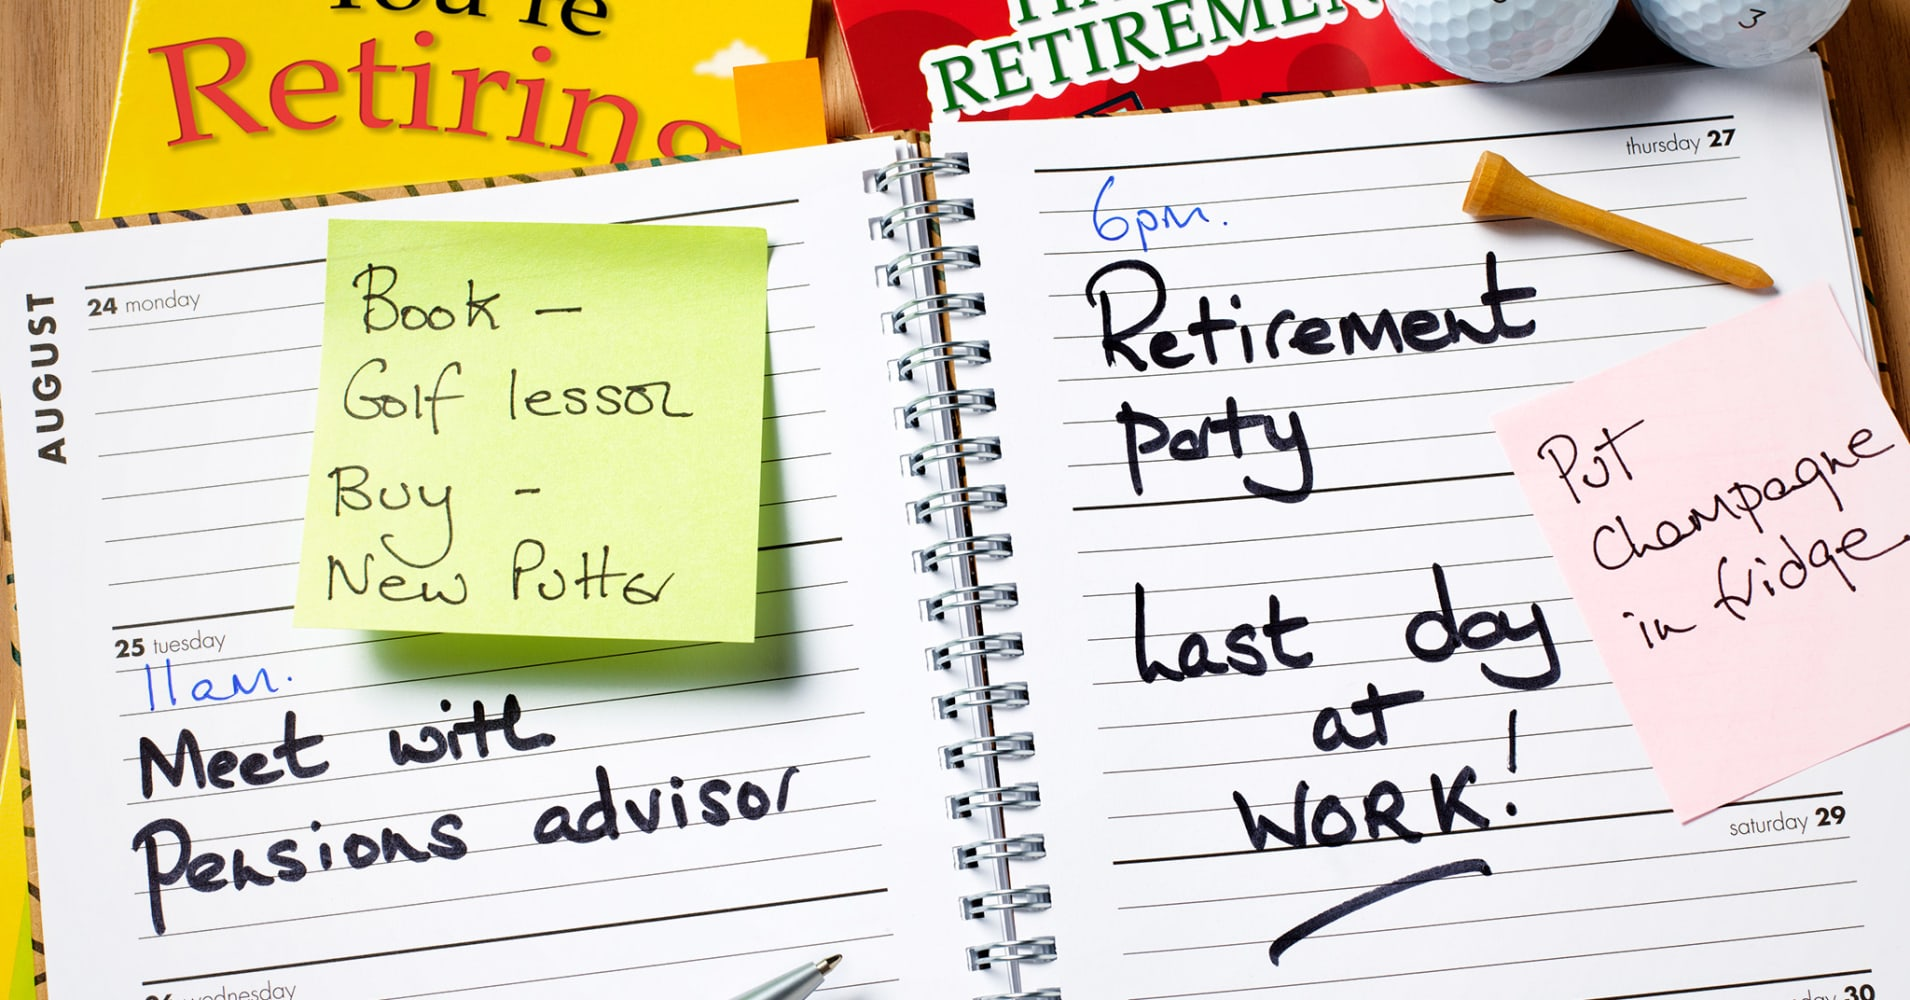 What to do in retirement Work for pensioners